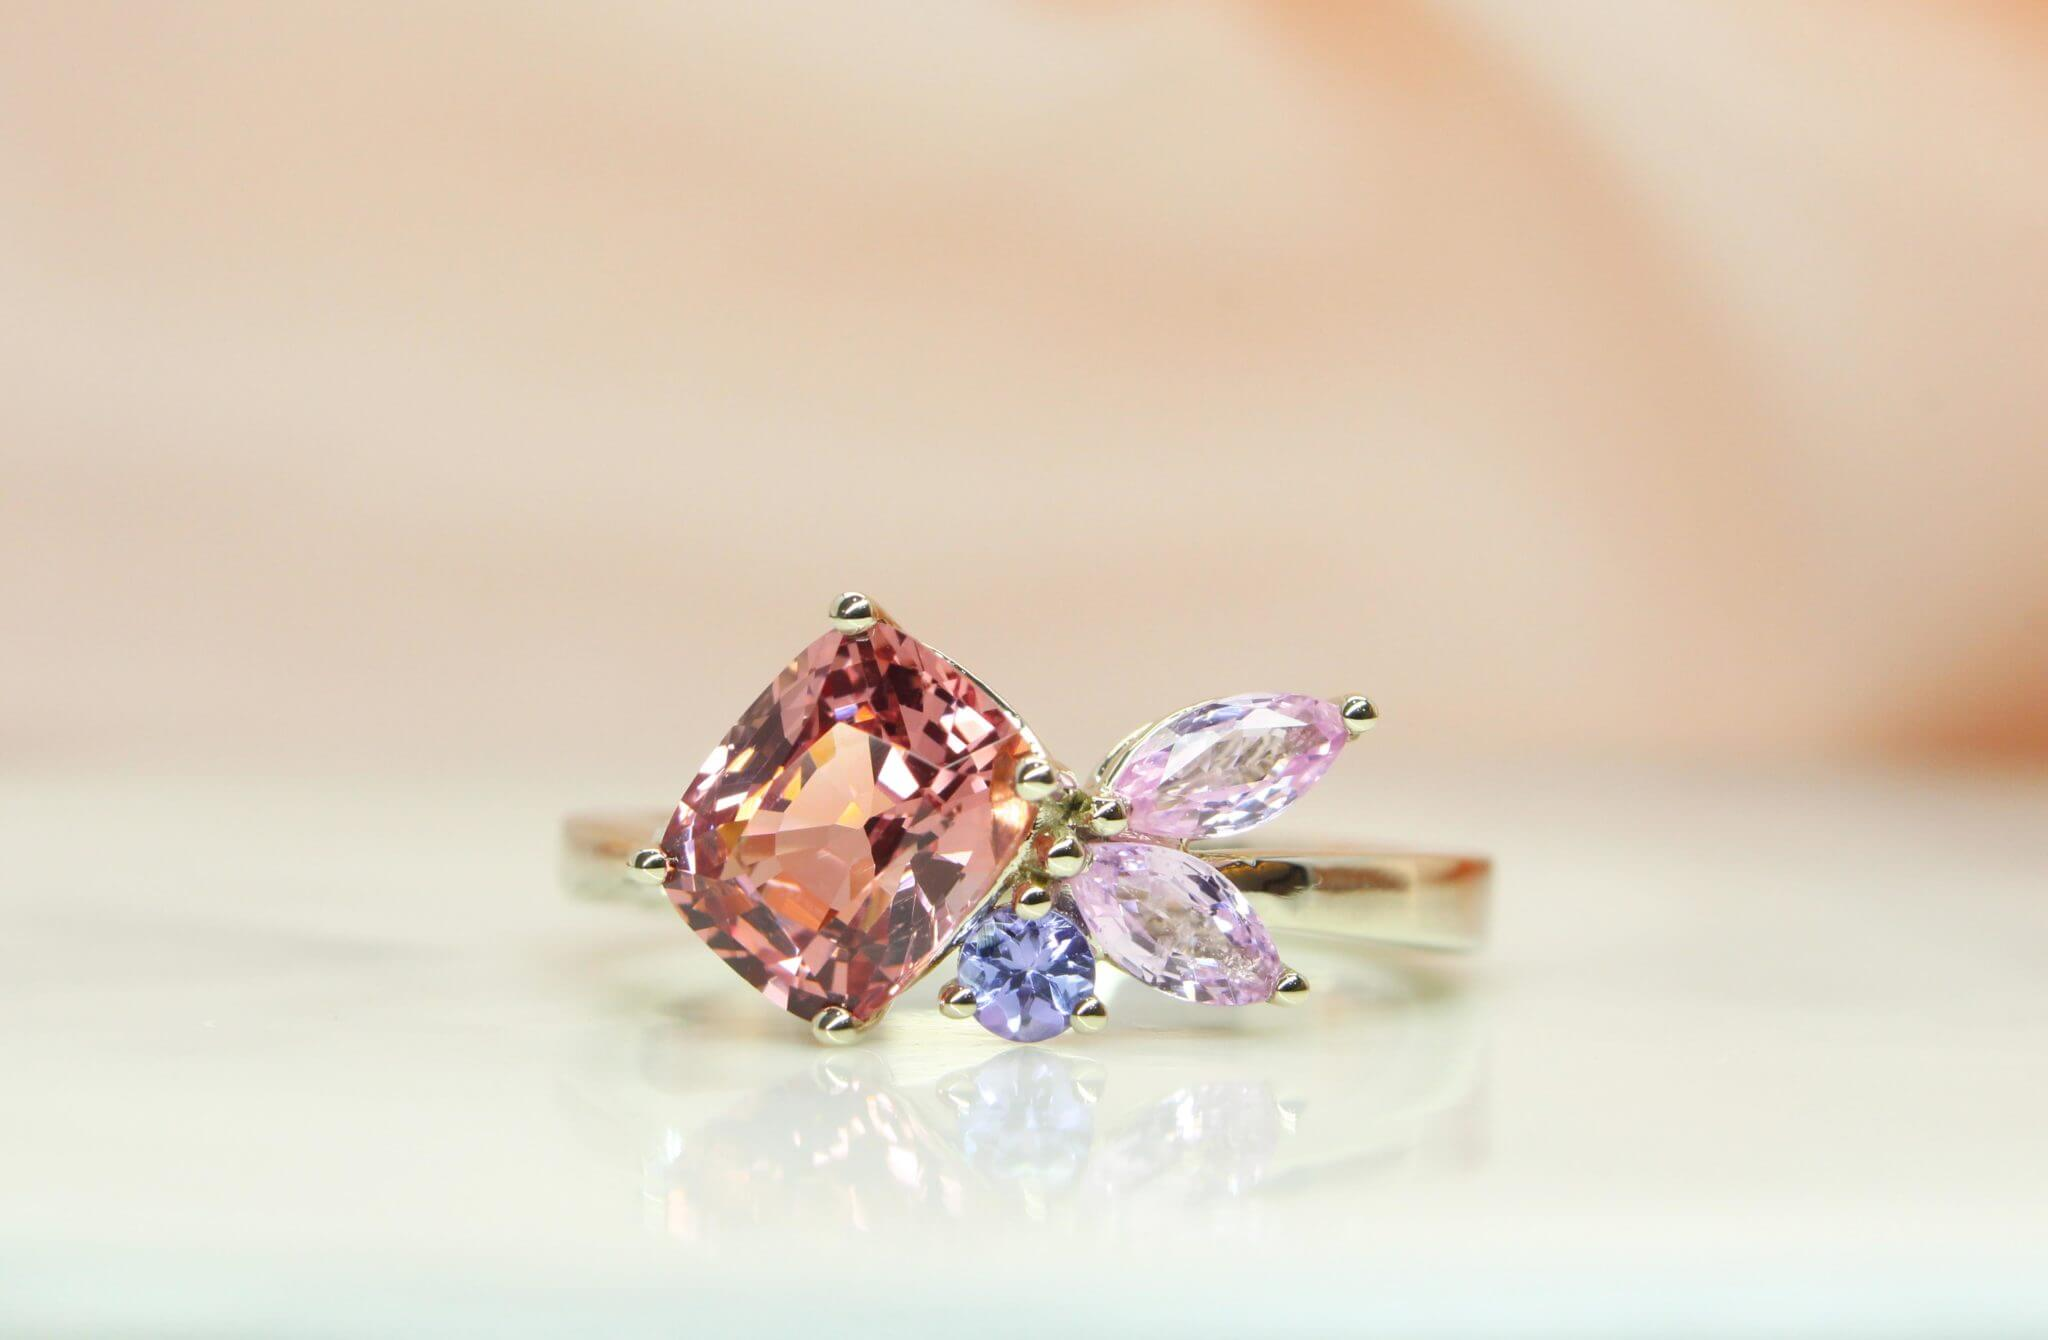 Cluster ring with spinel in orange pink shade instead of the classic solitaire for their wedding engagement, crafted in natural white gold band | Local Singapore Customised Jeweller in Wedding and Engagement ring with coloured gemstones.